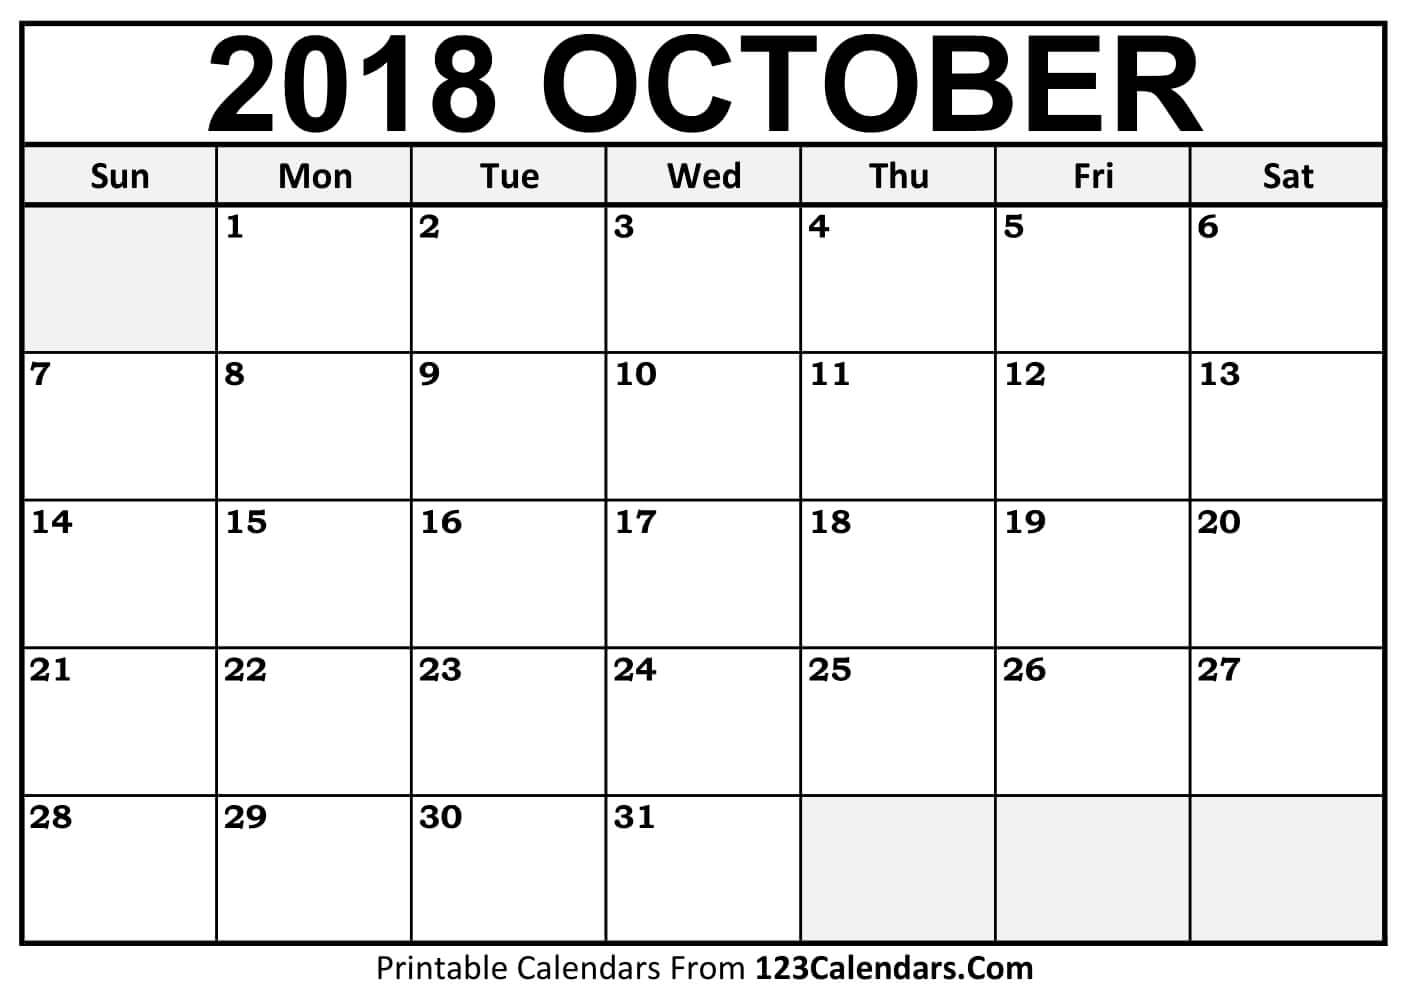 printable october 2018 calendar templates 123calendars October 2018 Calendar Printable Template erdferdf